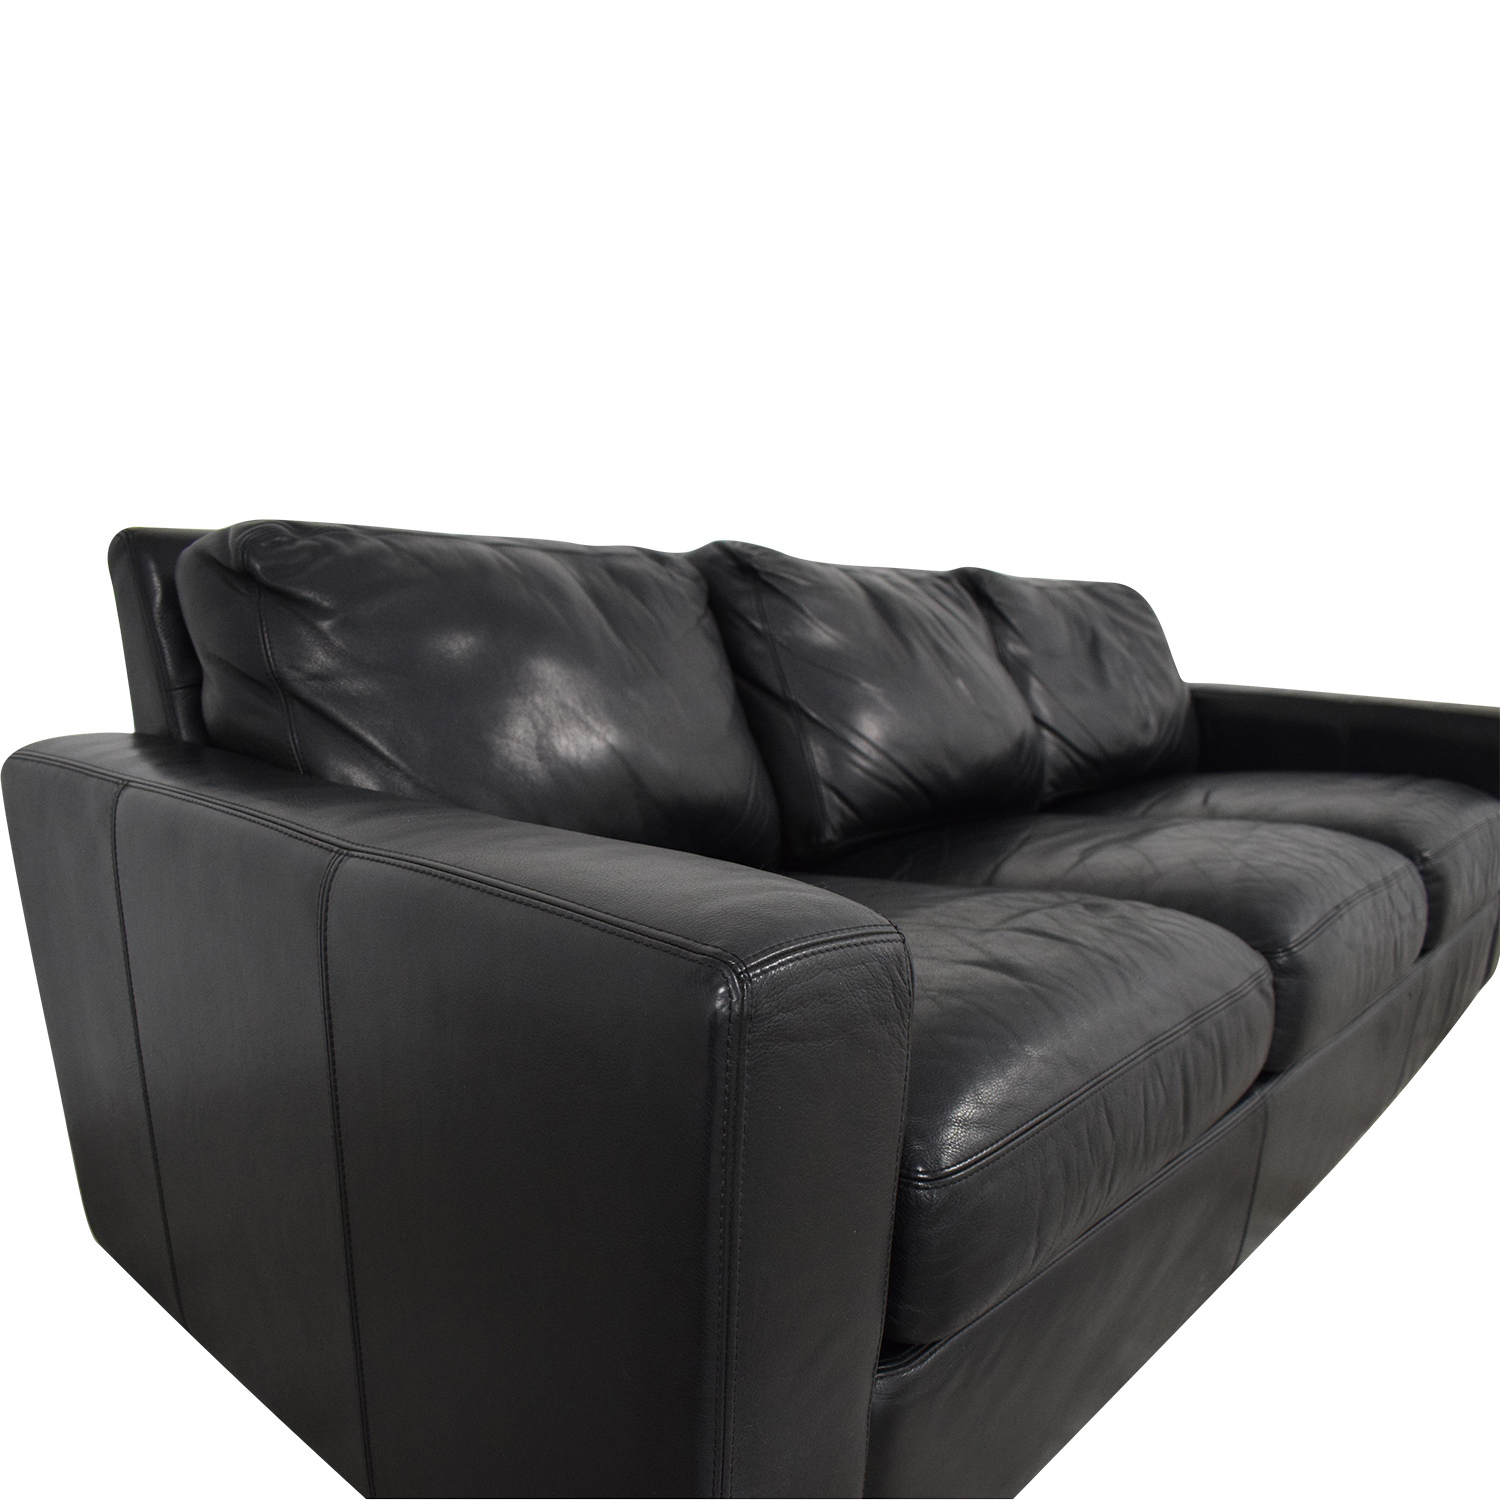 Design Within Reach Design Within Reach Portola Sofa nj